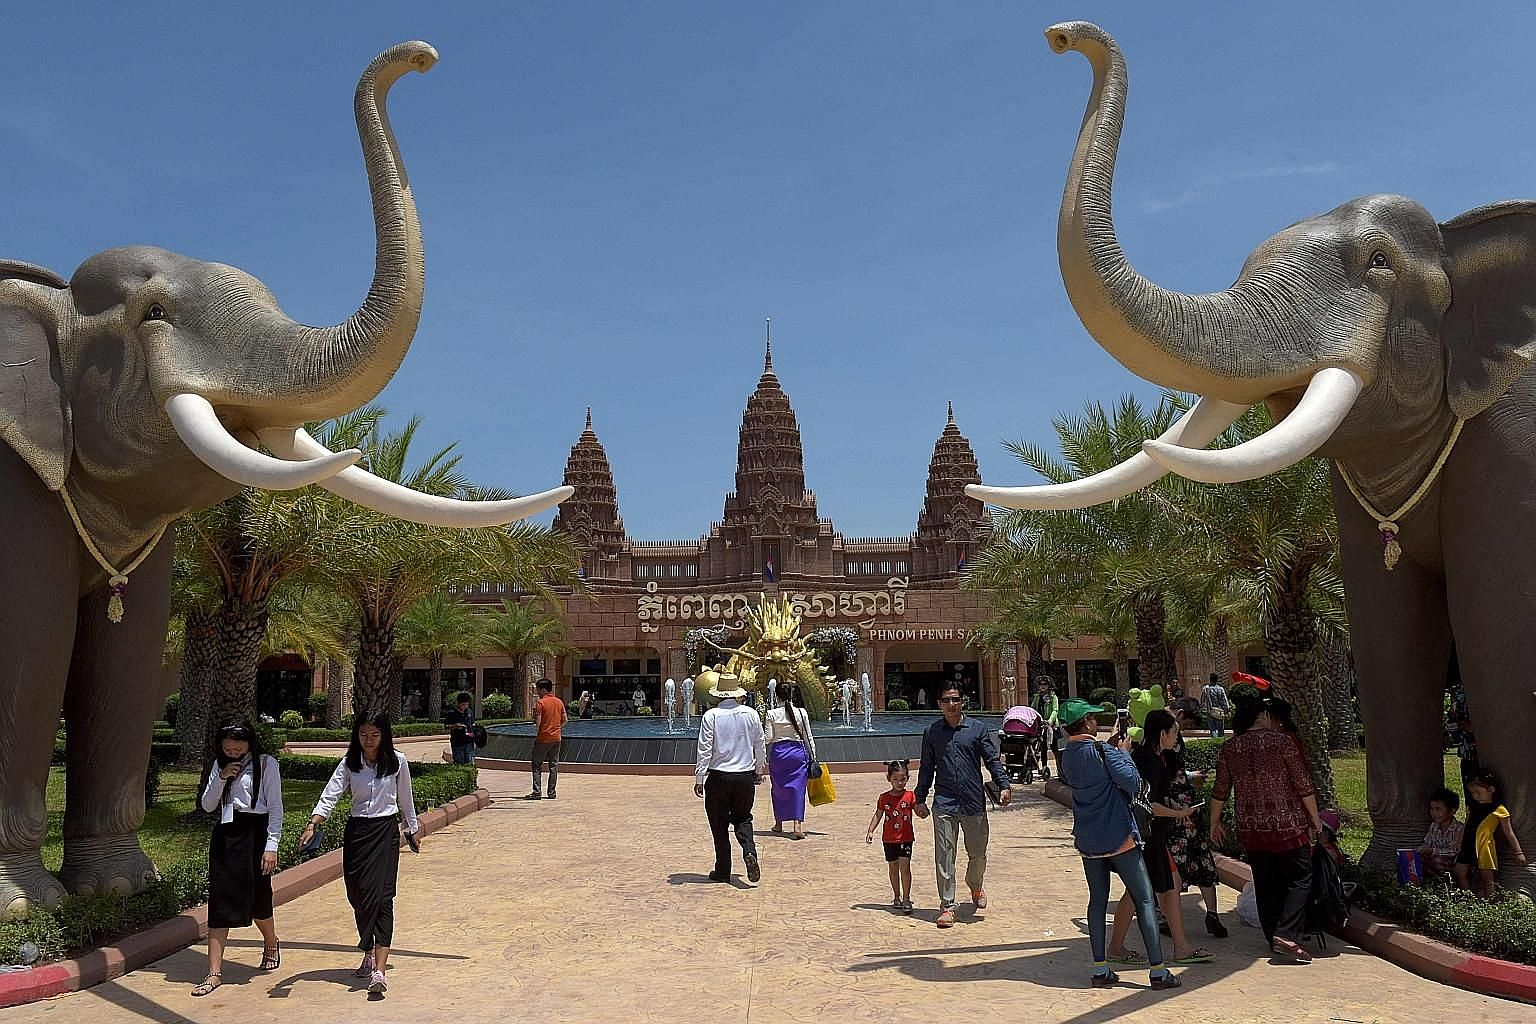 Phnom Penh Safari, the first major zoo in Cambodia's capital, opened to visitors yesterday. Prime Minister Hun Sen took a brief break from preparations for next month's elections to attend the inauguration ceremony of the US$9 million (S$12.2 milli